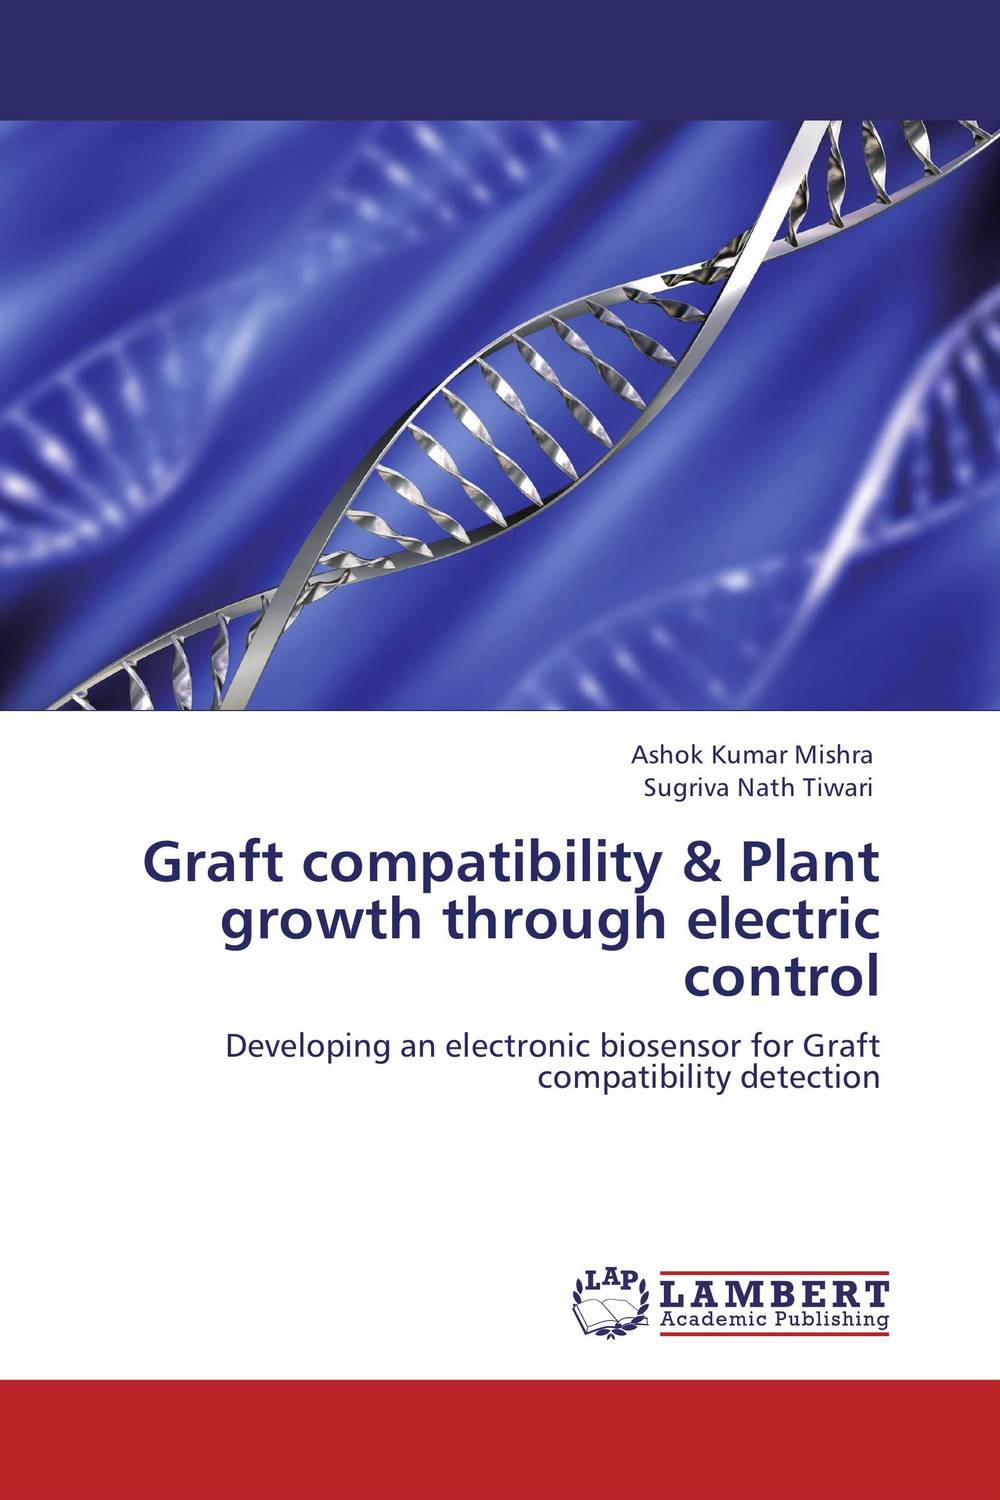 Graft compatibility & Plant growth through electric control сумка велосипедная larsen 16 см х 13 см х 11 см